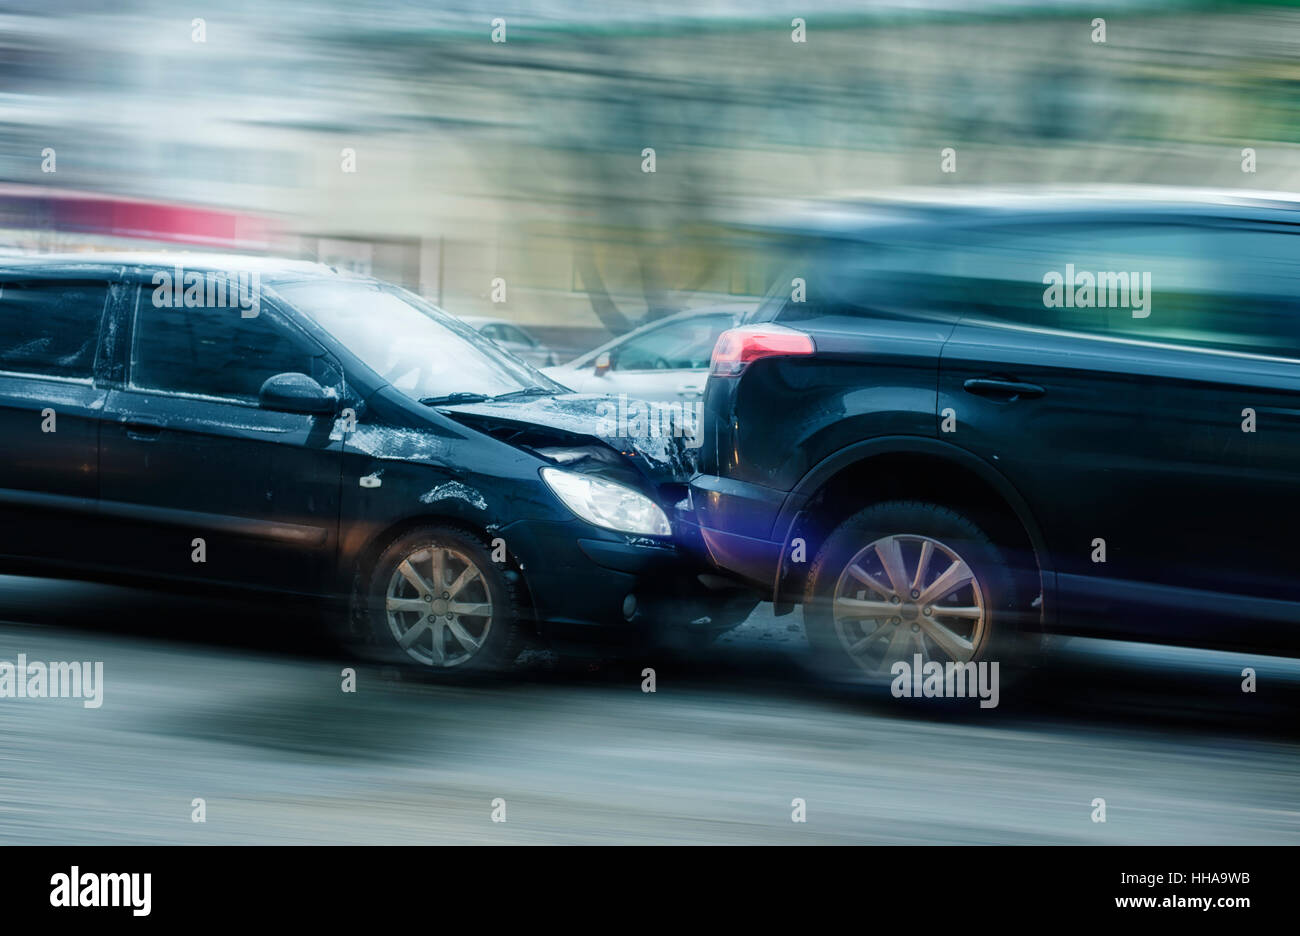 Car accident with strong blurring - Stock Image